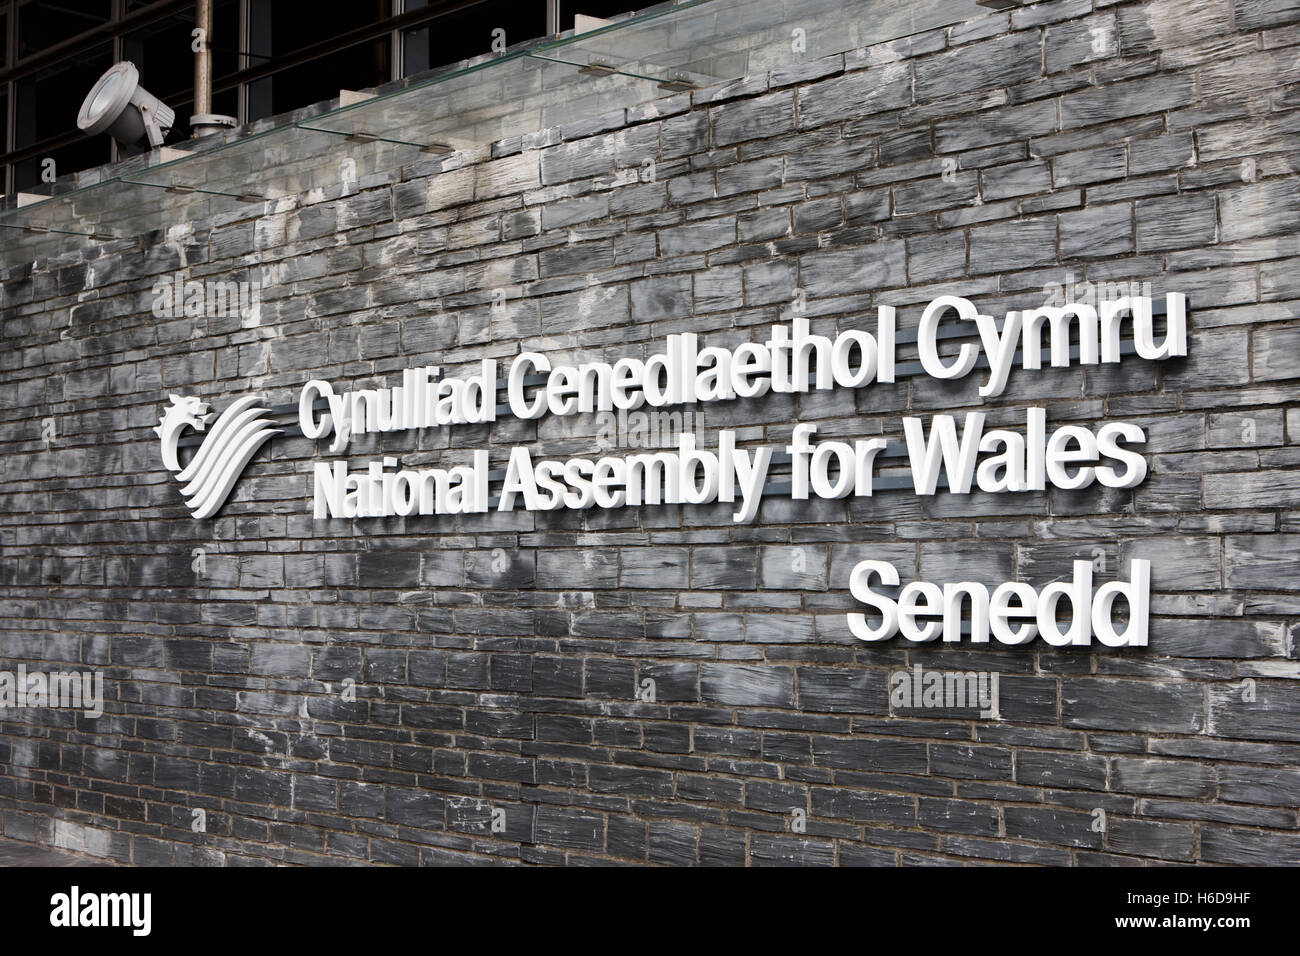 senedd national assembly for wales building Cardiff Wales United Kingdom - Stock Image